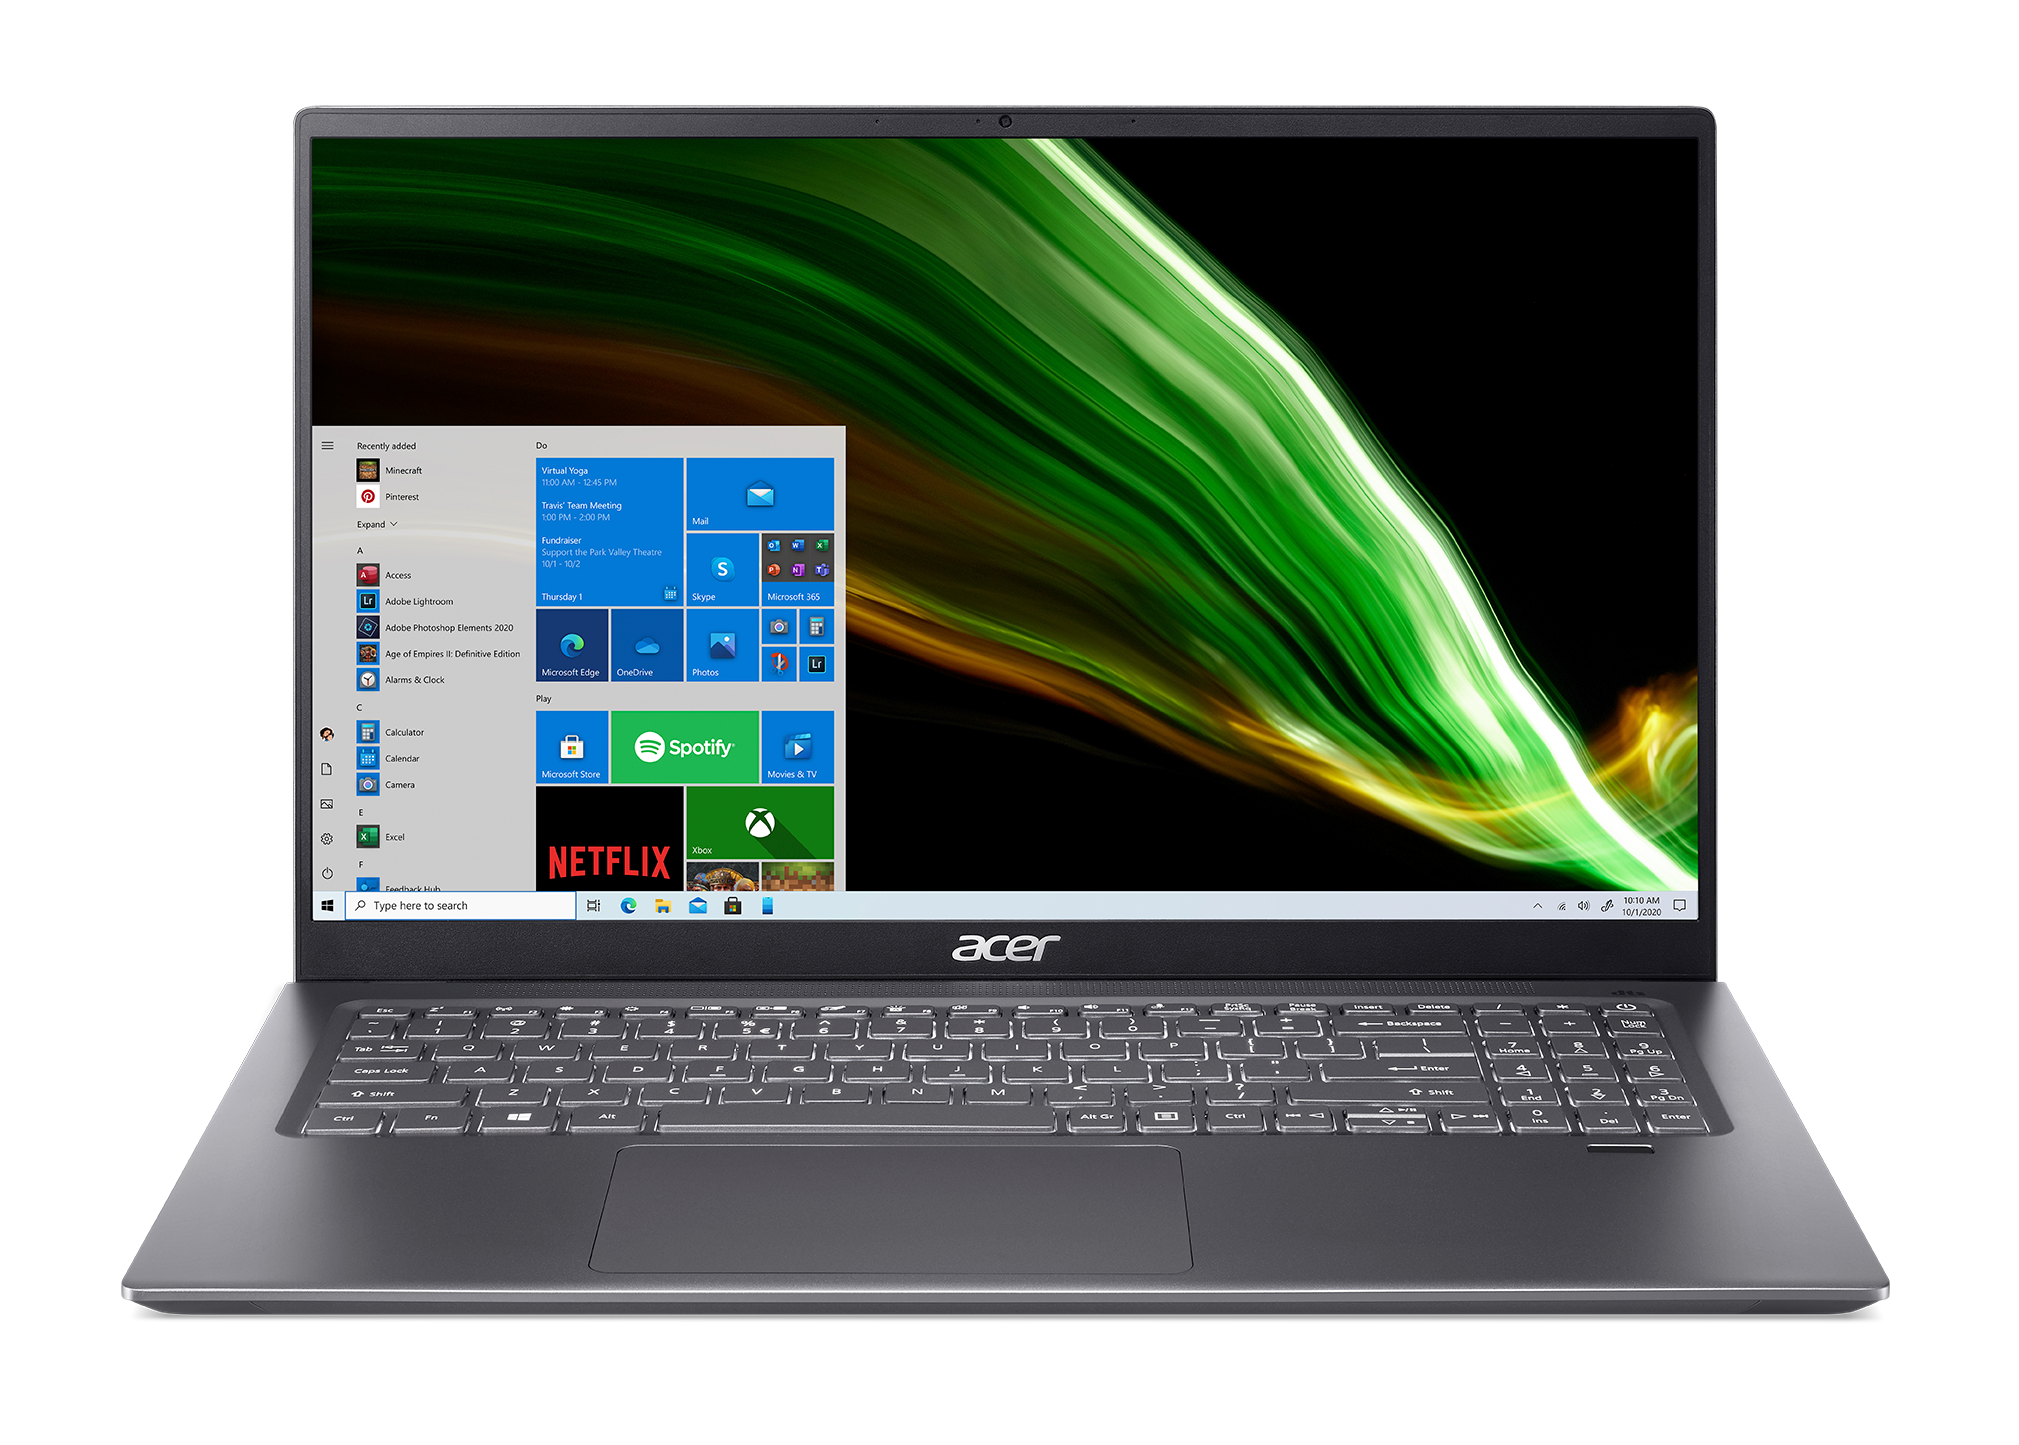 The Acer Swift 3.